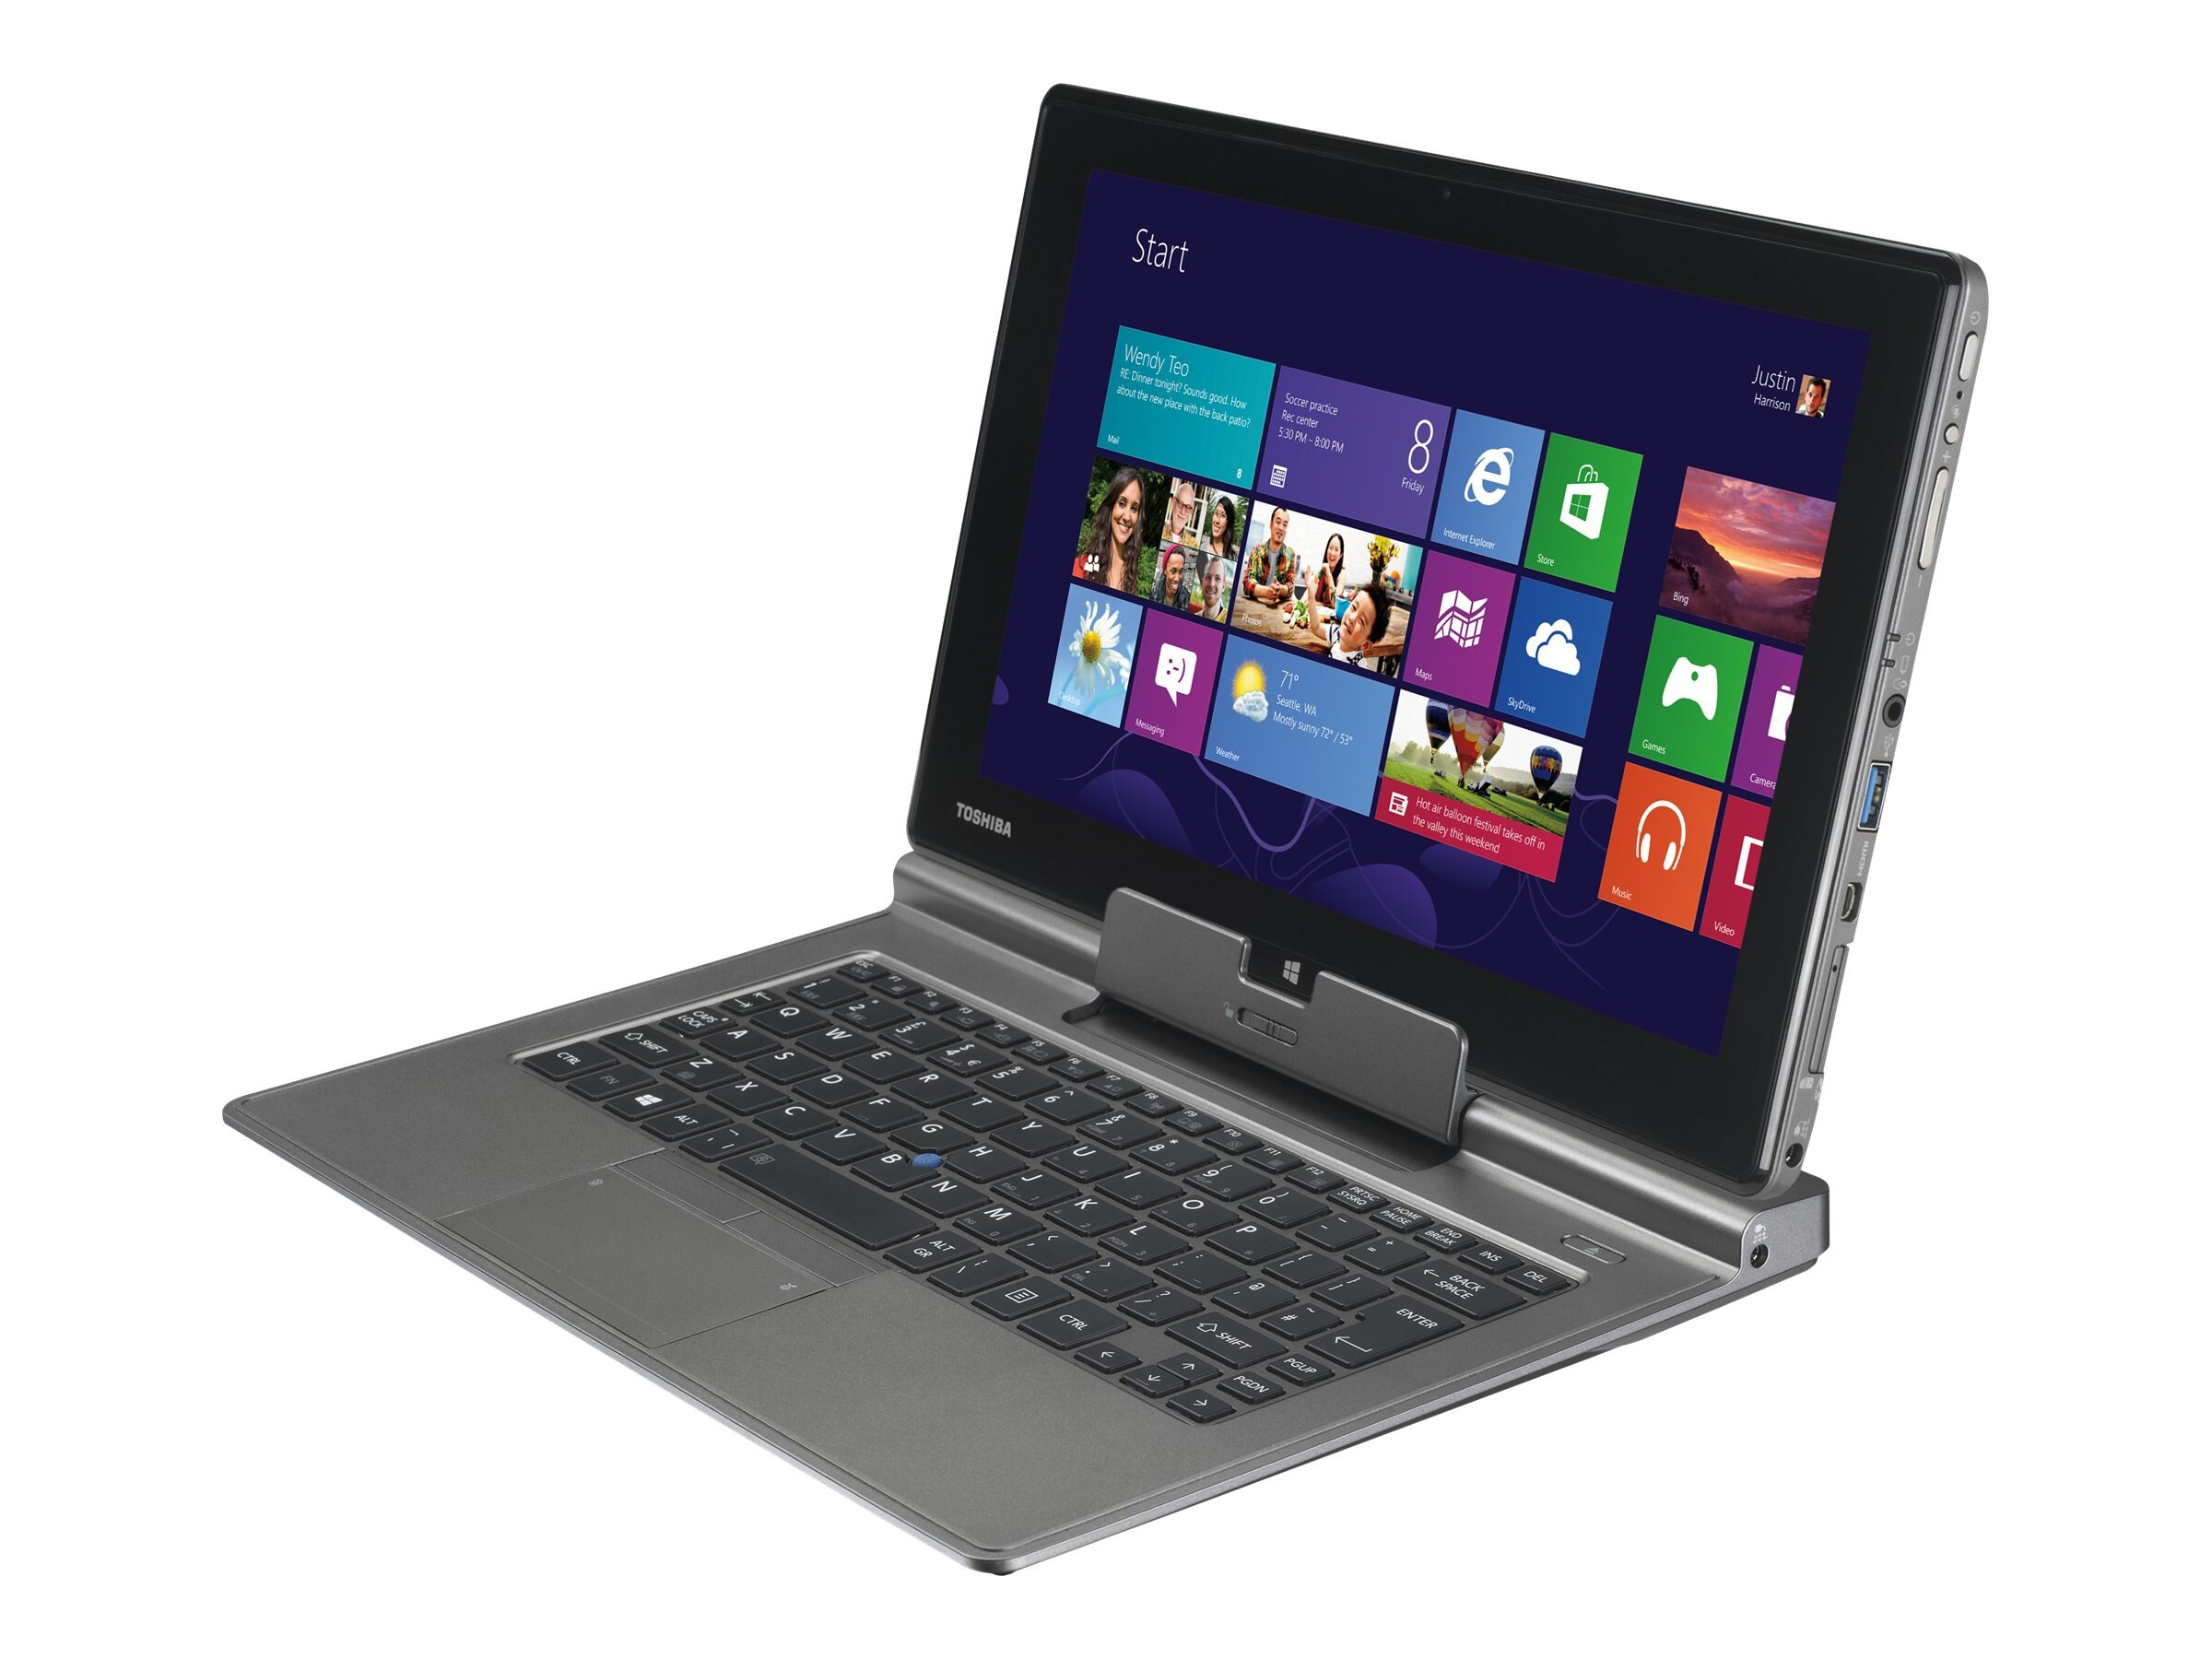 Toshiba Portege Z10T-A1110 Core i5-3439Y 1.5GHz 4GB 128GB SSD agn BT 2xWC 6C 11.6 FHD Touch WiDi W8P, PT132U-00600S, 15787854, Notebooks - Convertible